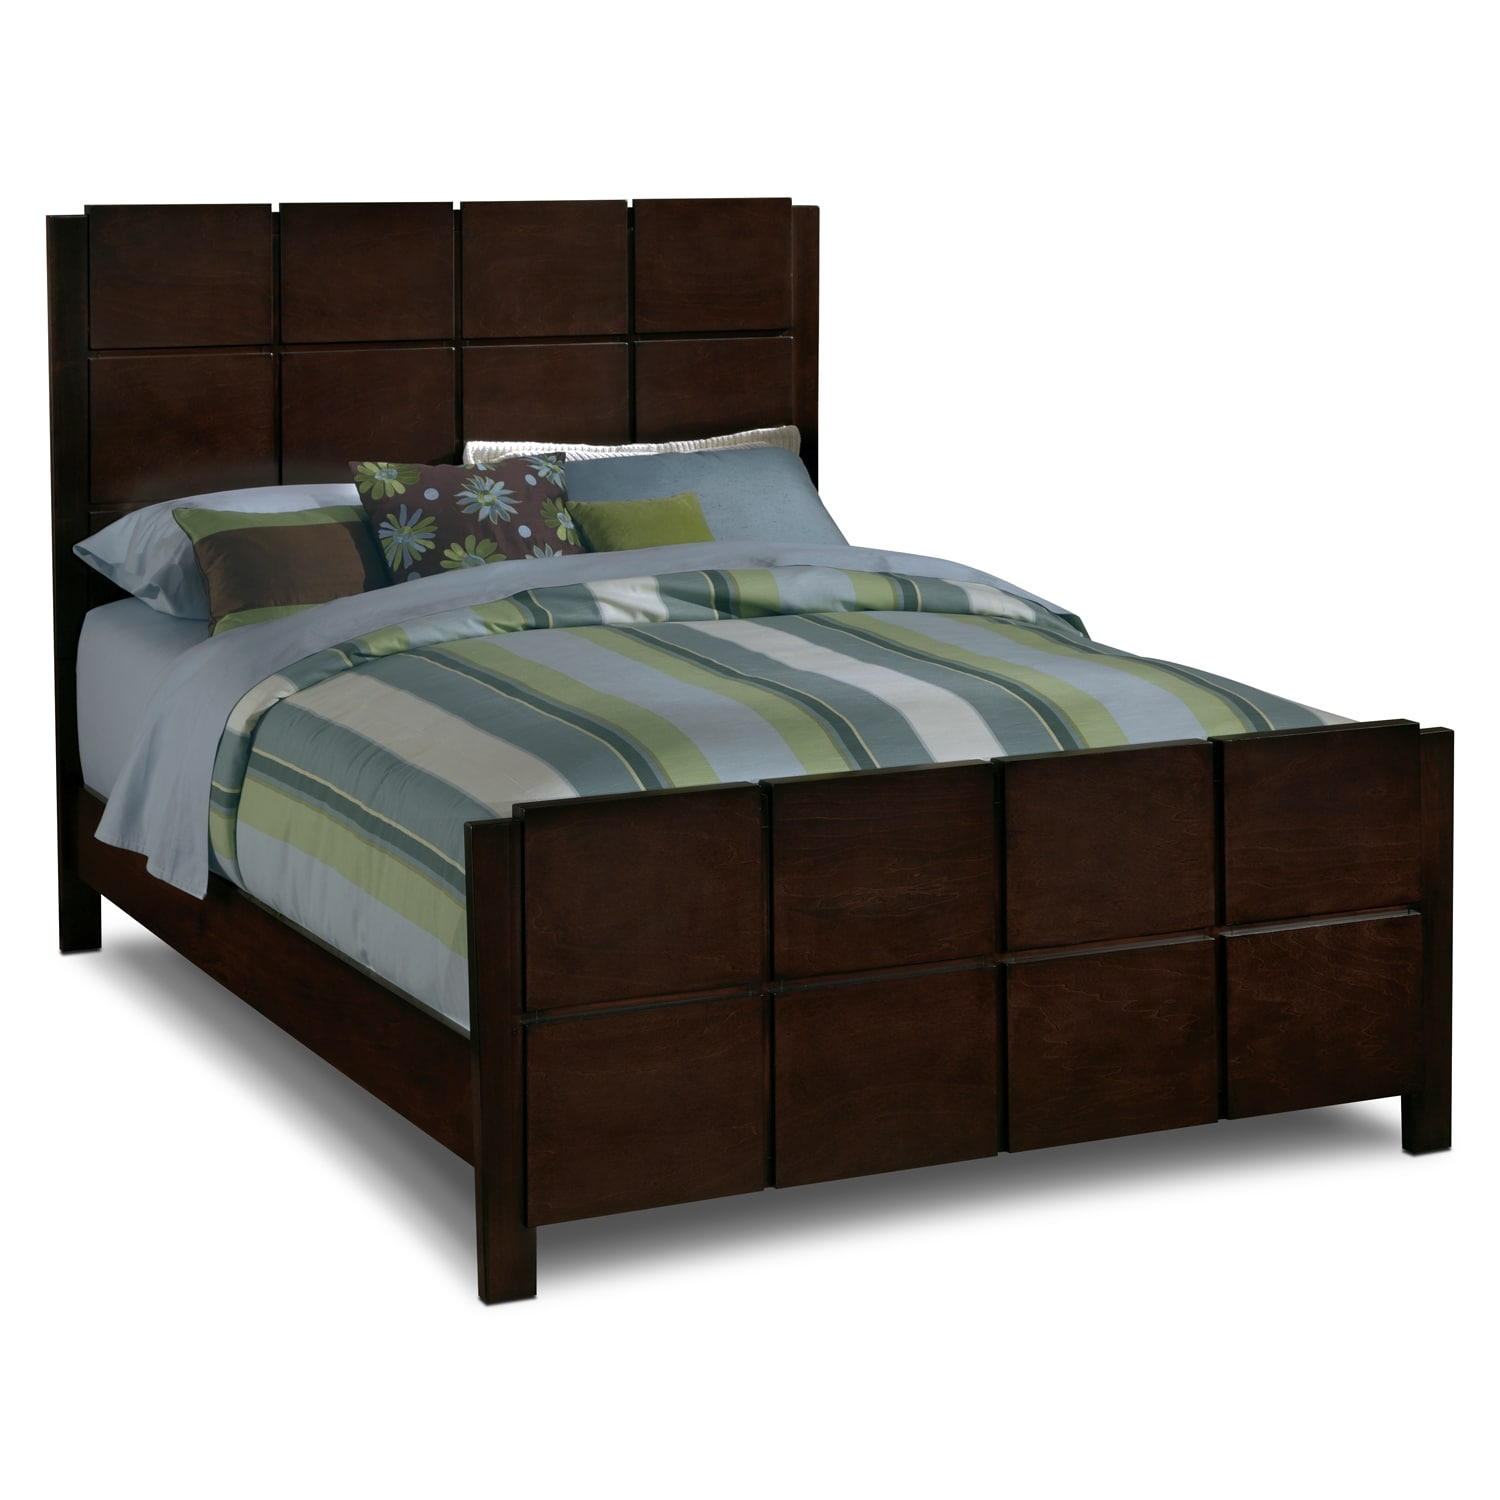 Mosaic queen bed value city furniture for Furniture bedroom furniture